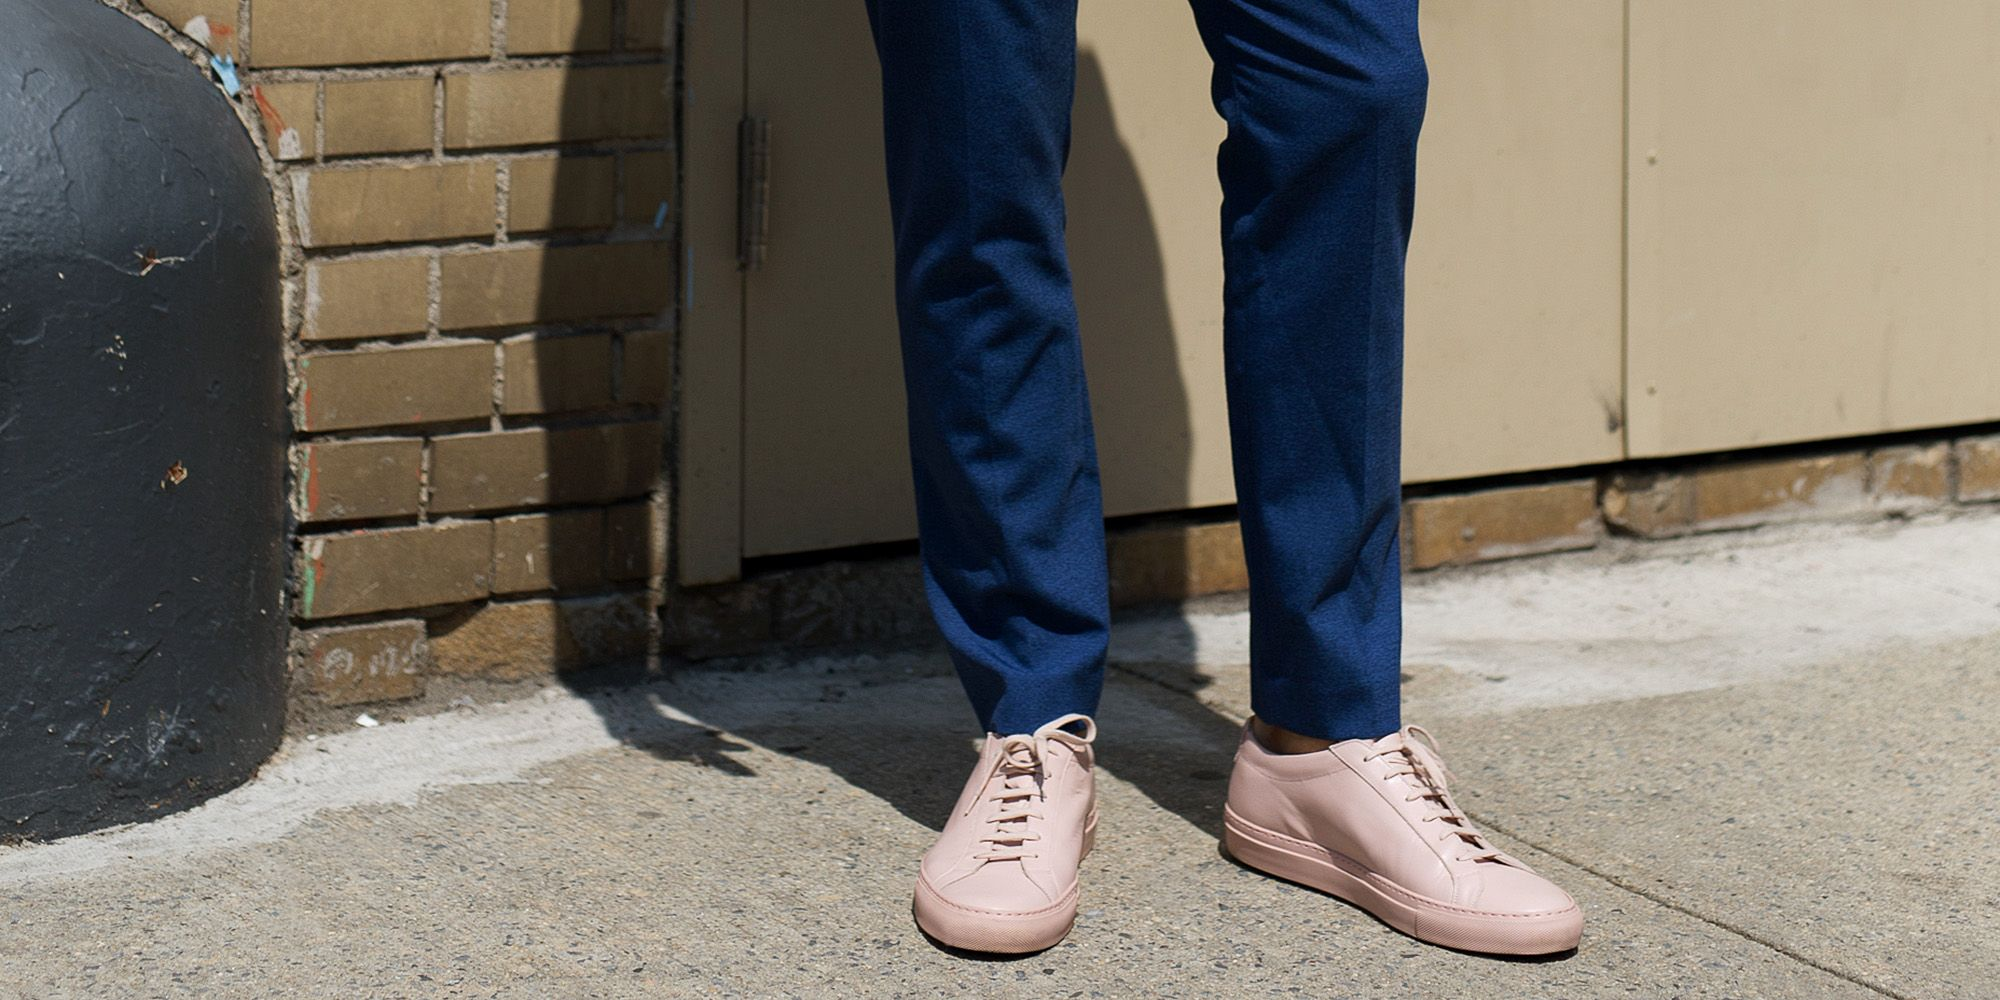 13 Sneakers That Look Great With a Suit